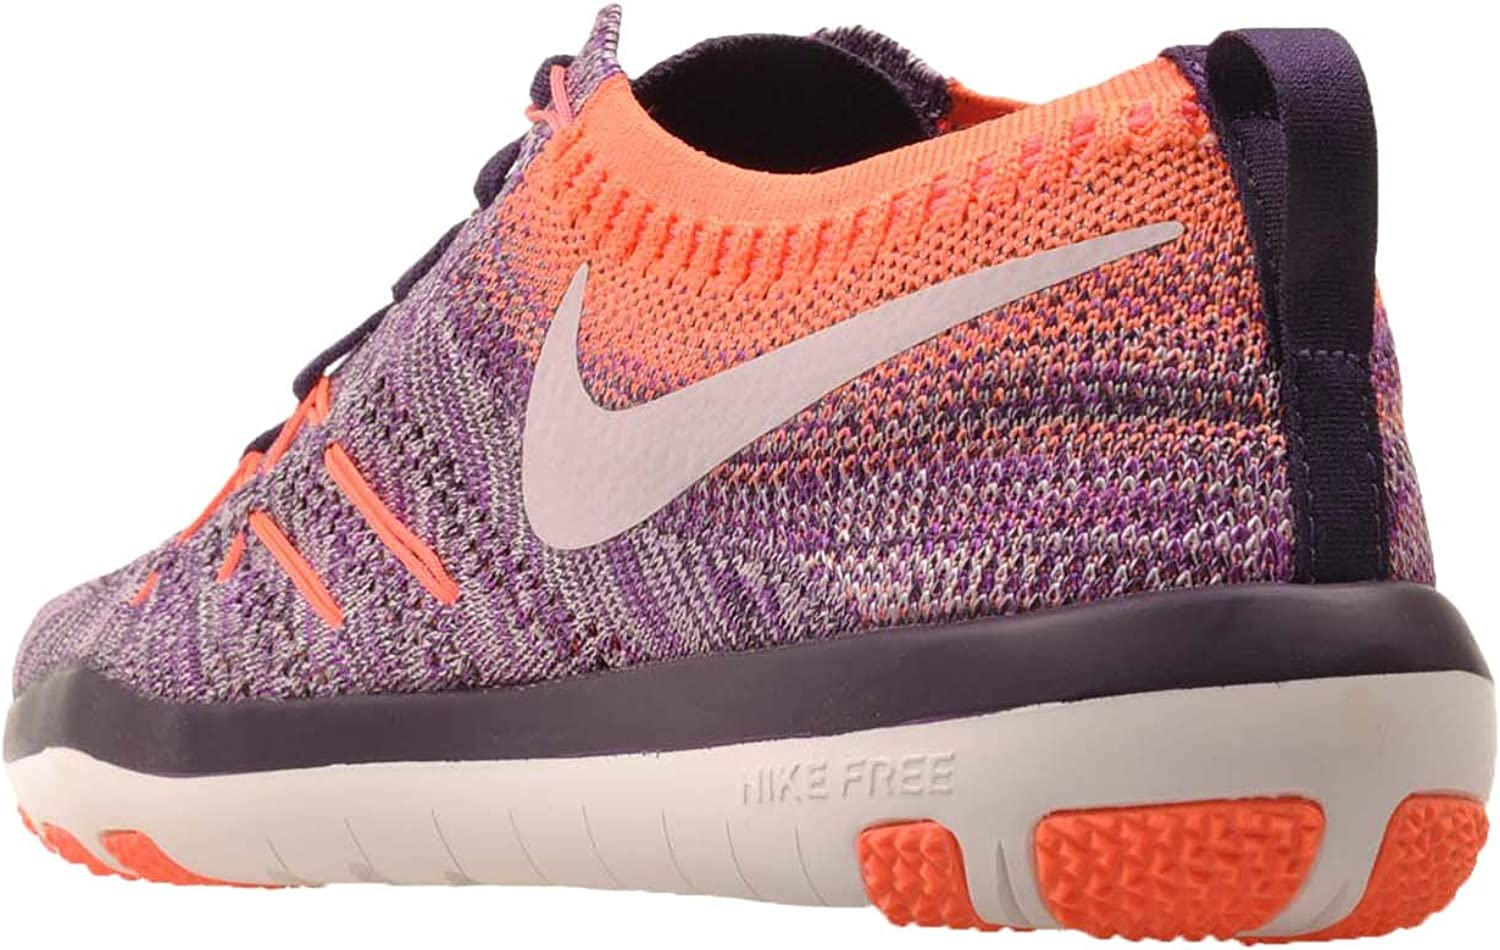 Nike Wmns Free TR Focus Flyknit, Hyper Volt/Bleached Lilac ...